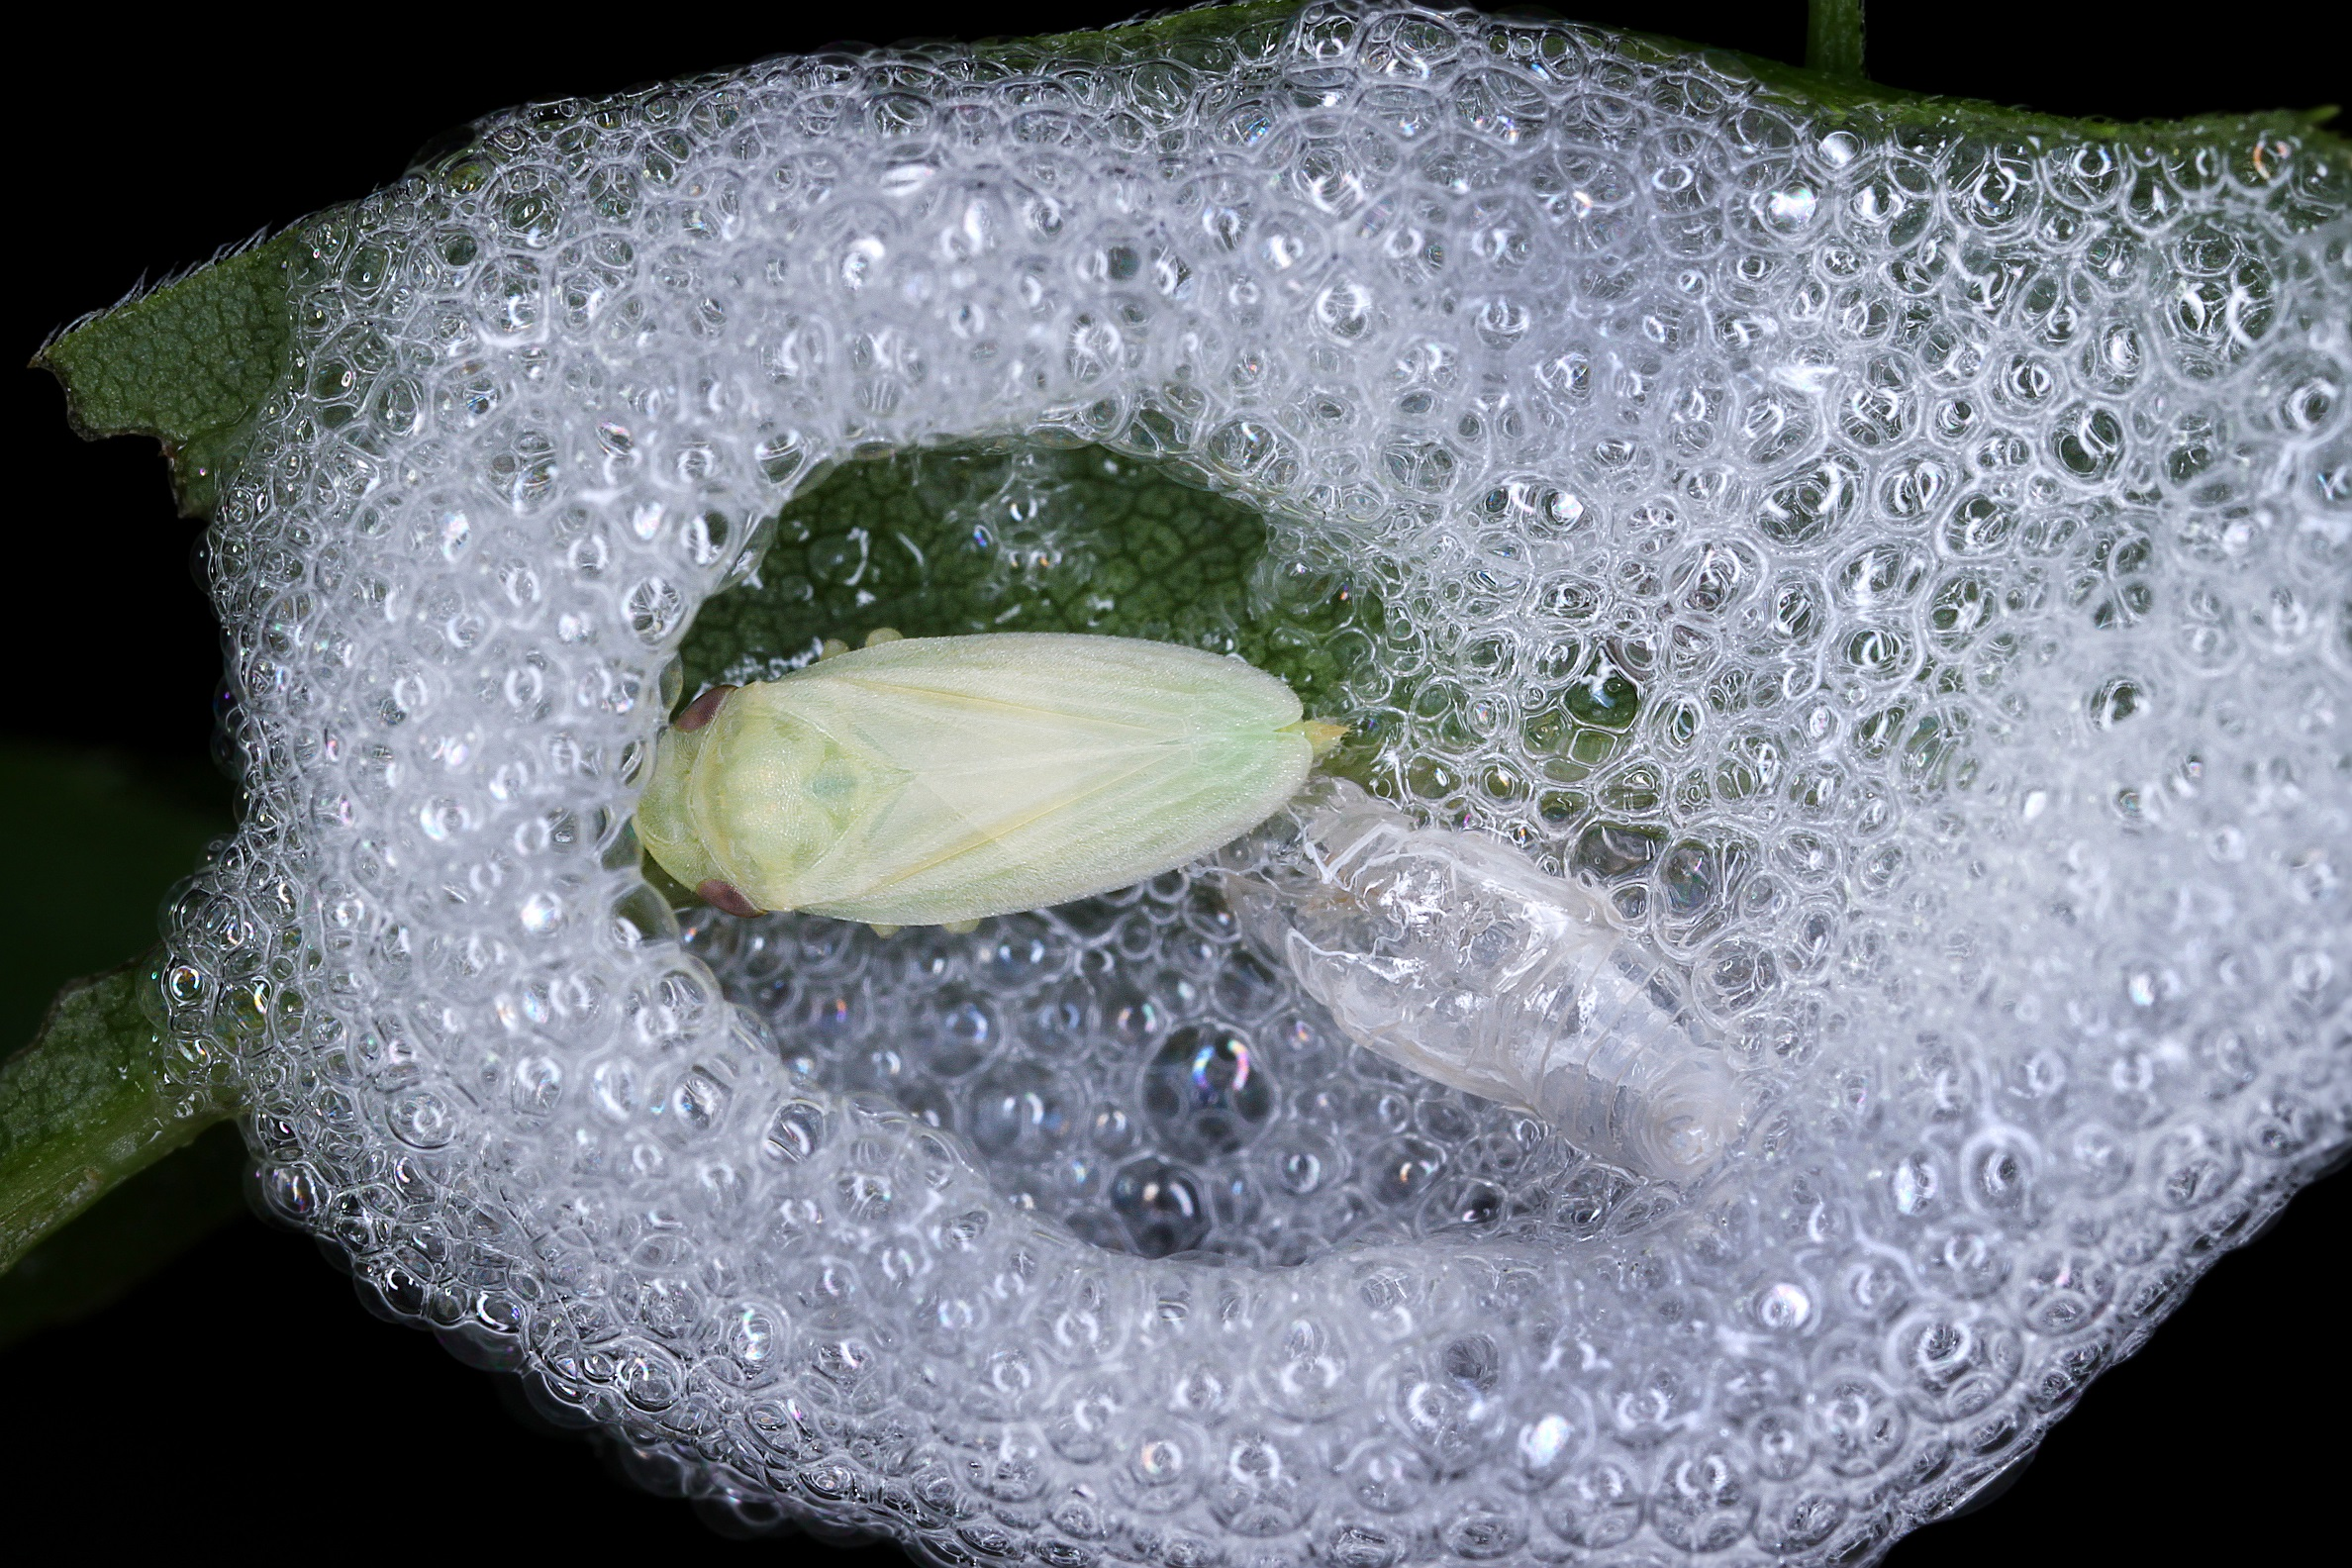 Gardeners have been asked to spot spittle on leaves in their garden. (Gernot Kunz/PA)